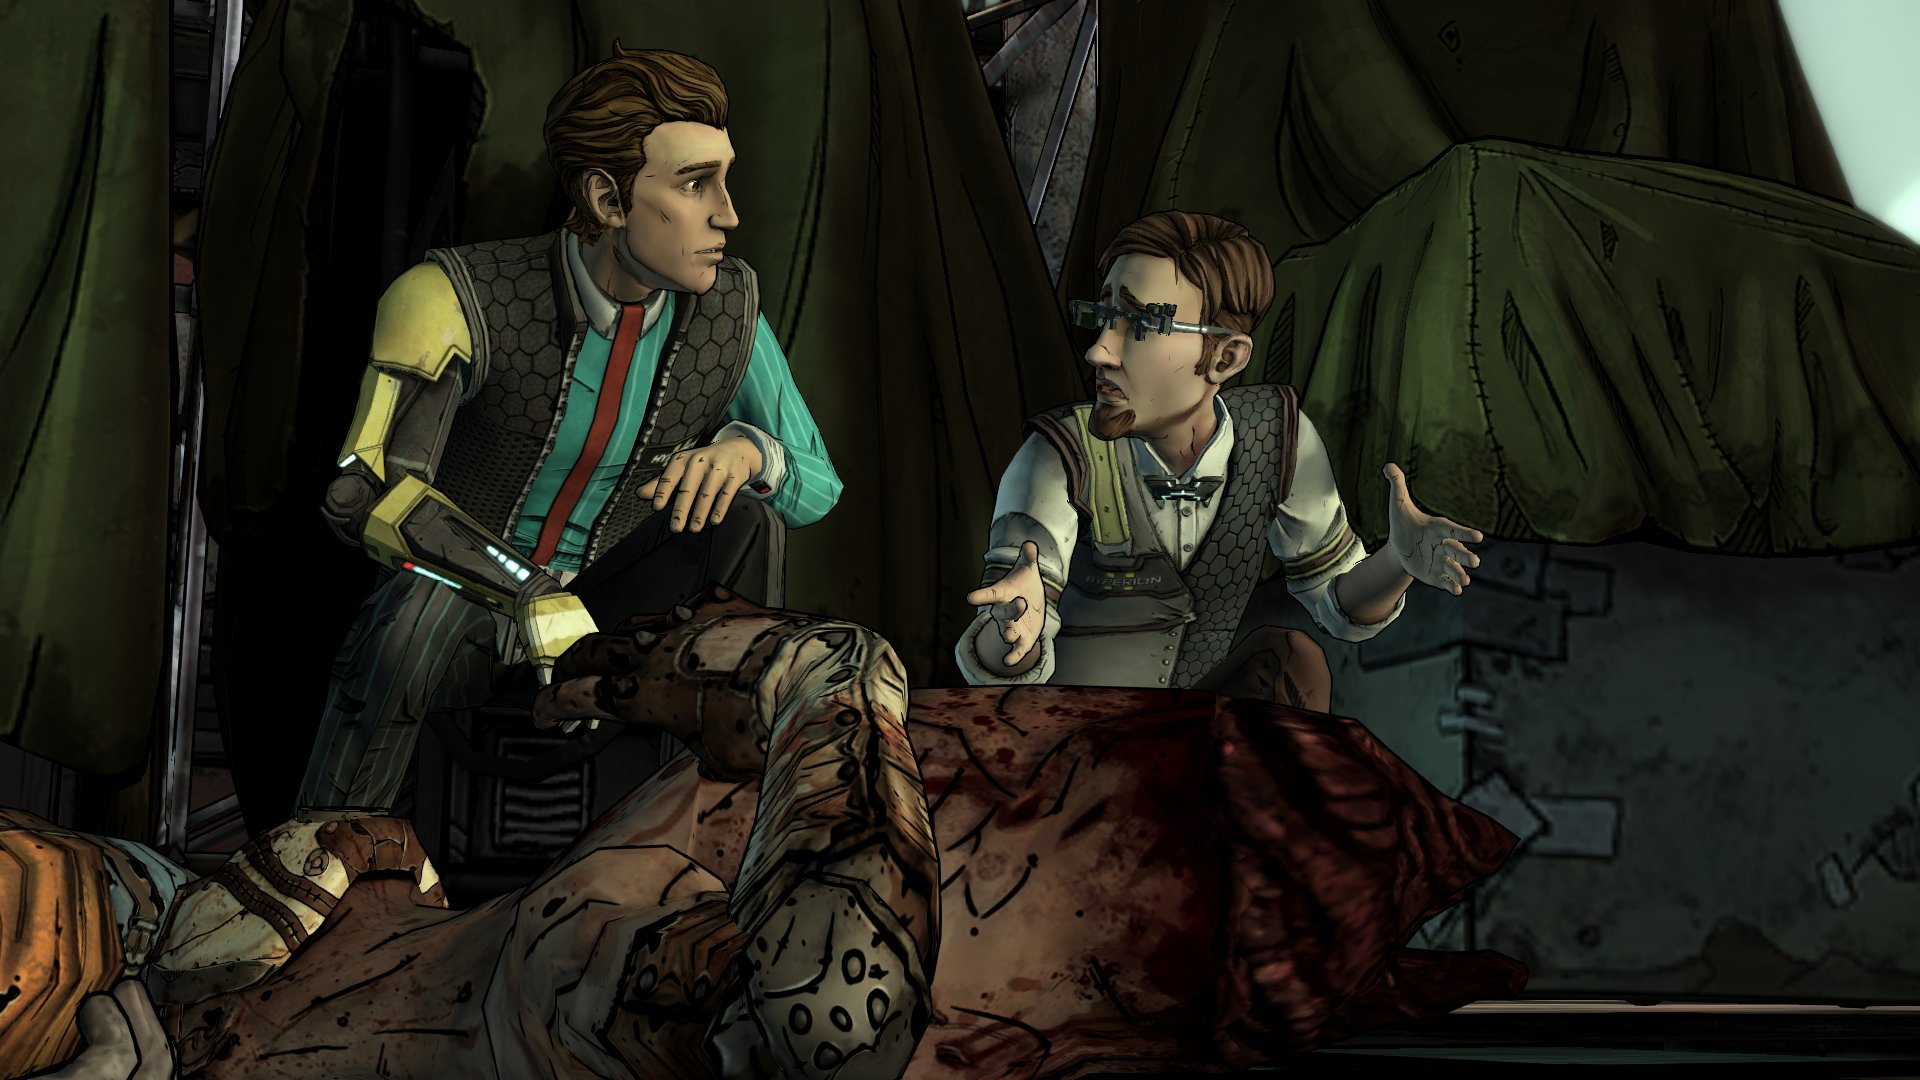 tales_from_the_borderlands-2665508